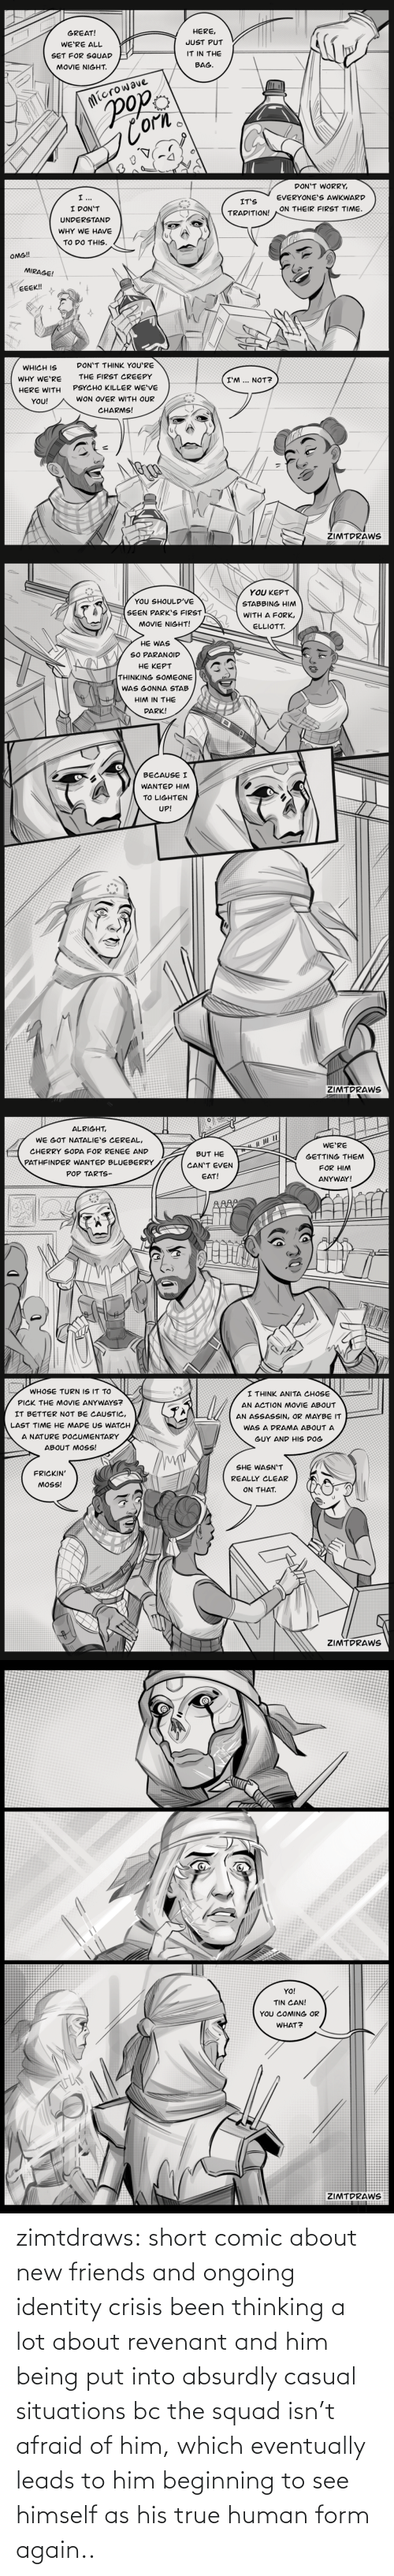 crisis: zimtdraws:  short comic about new friends and ongoing identity crisis  been thinking a lot about revenant and him being put into absurdly casual situations bc the squad isn't afraid of him, which eventually leads to him beginning to see himself as his true human form again..